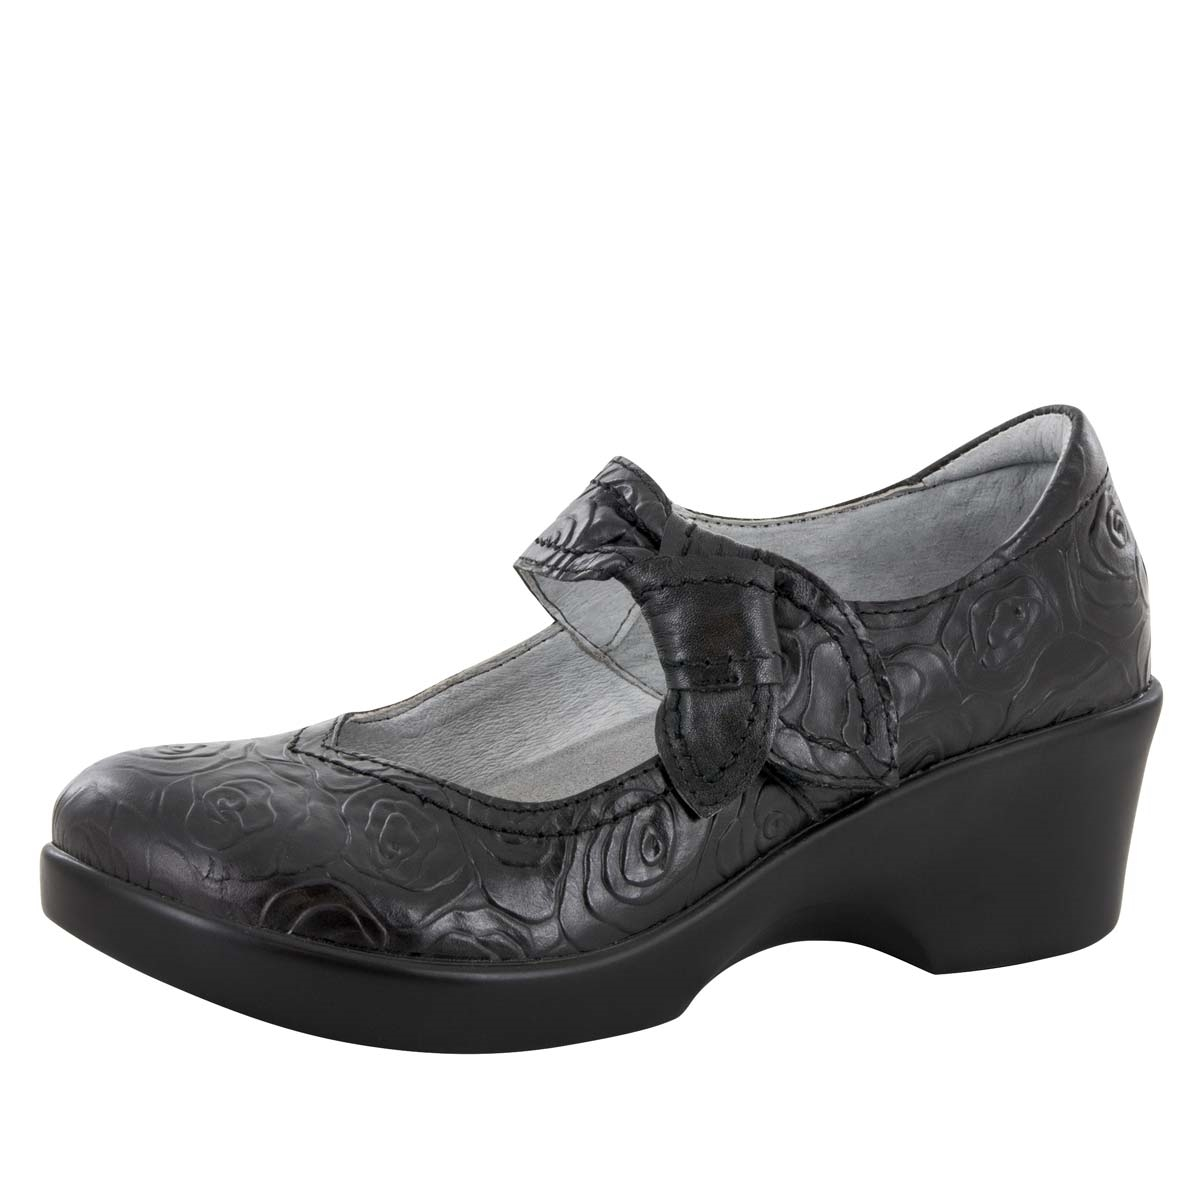 Alegria Ella Night Rosette slip resistant dress shoes for women. View  Larger Photo Email ...